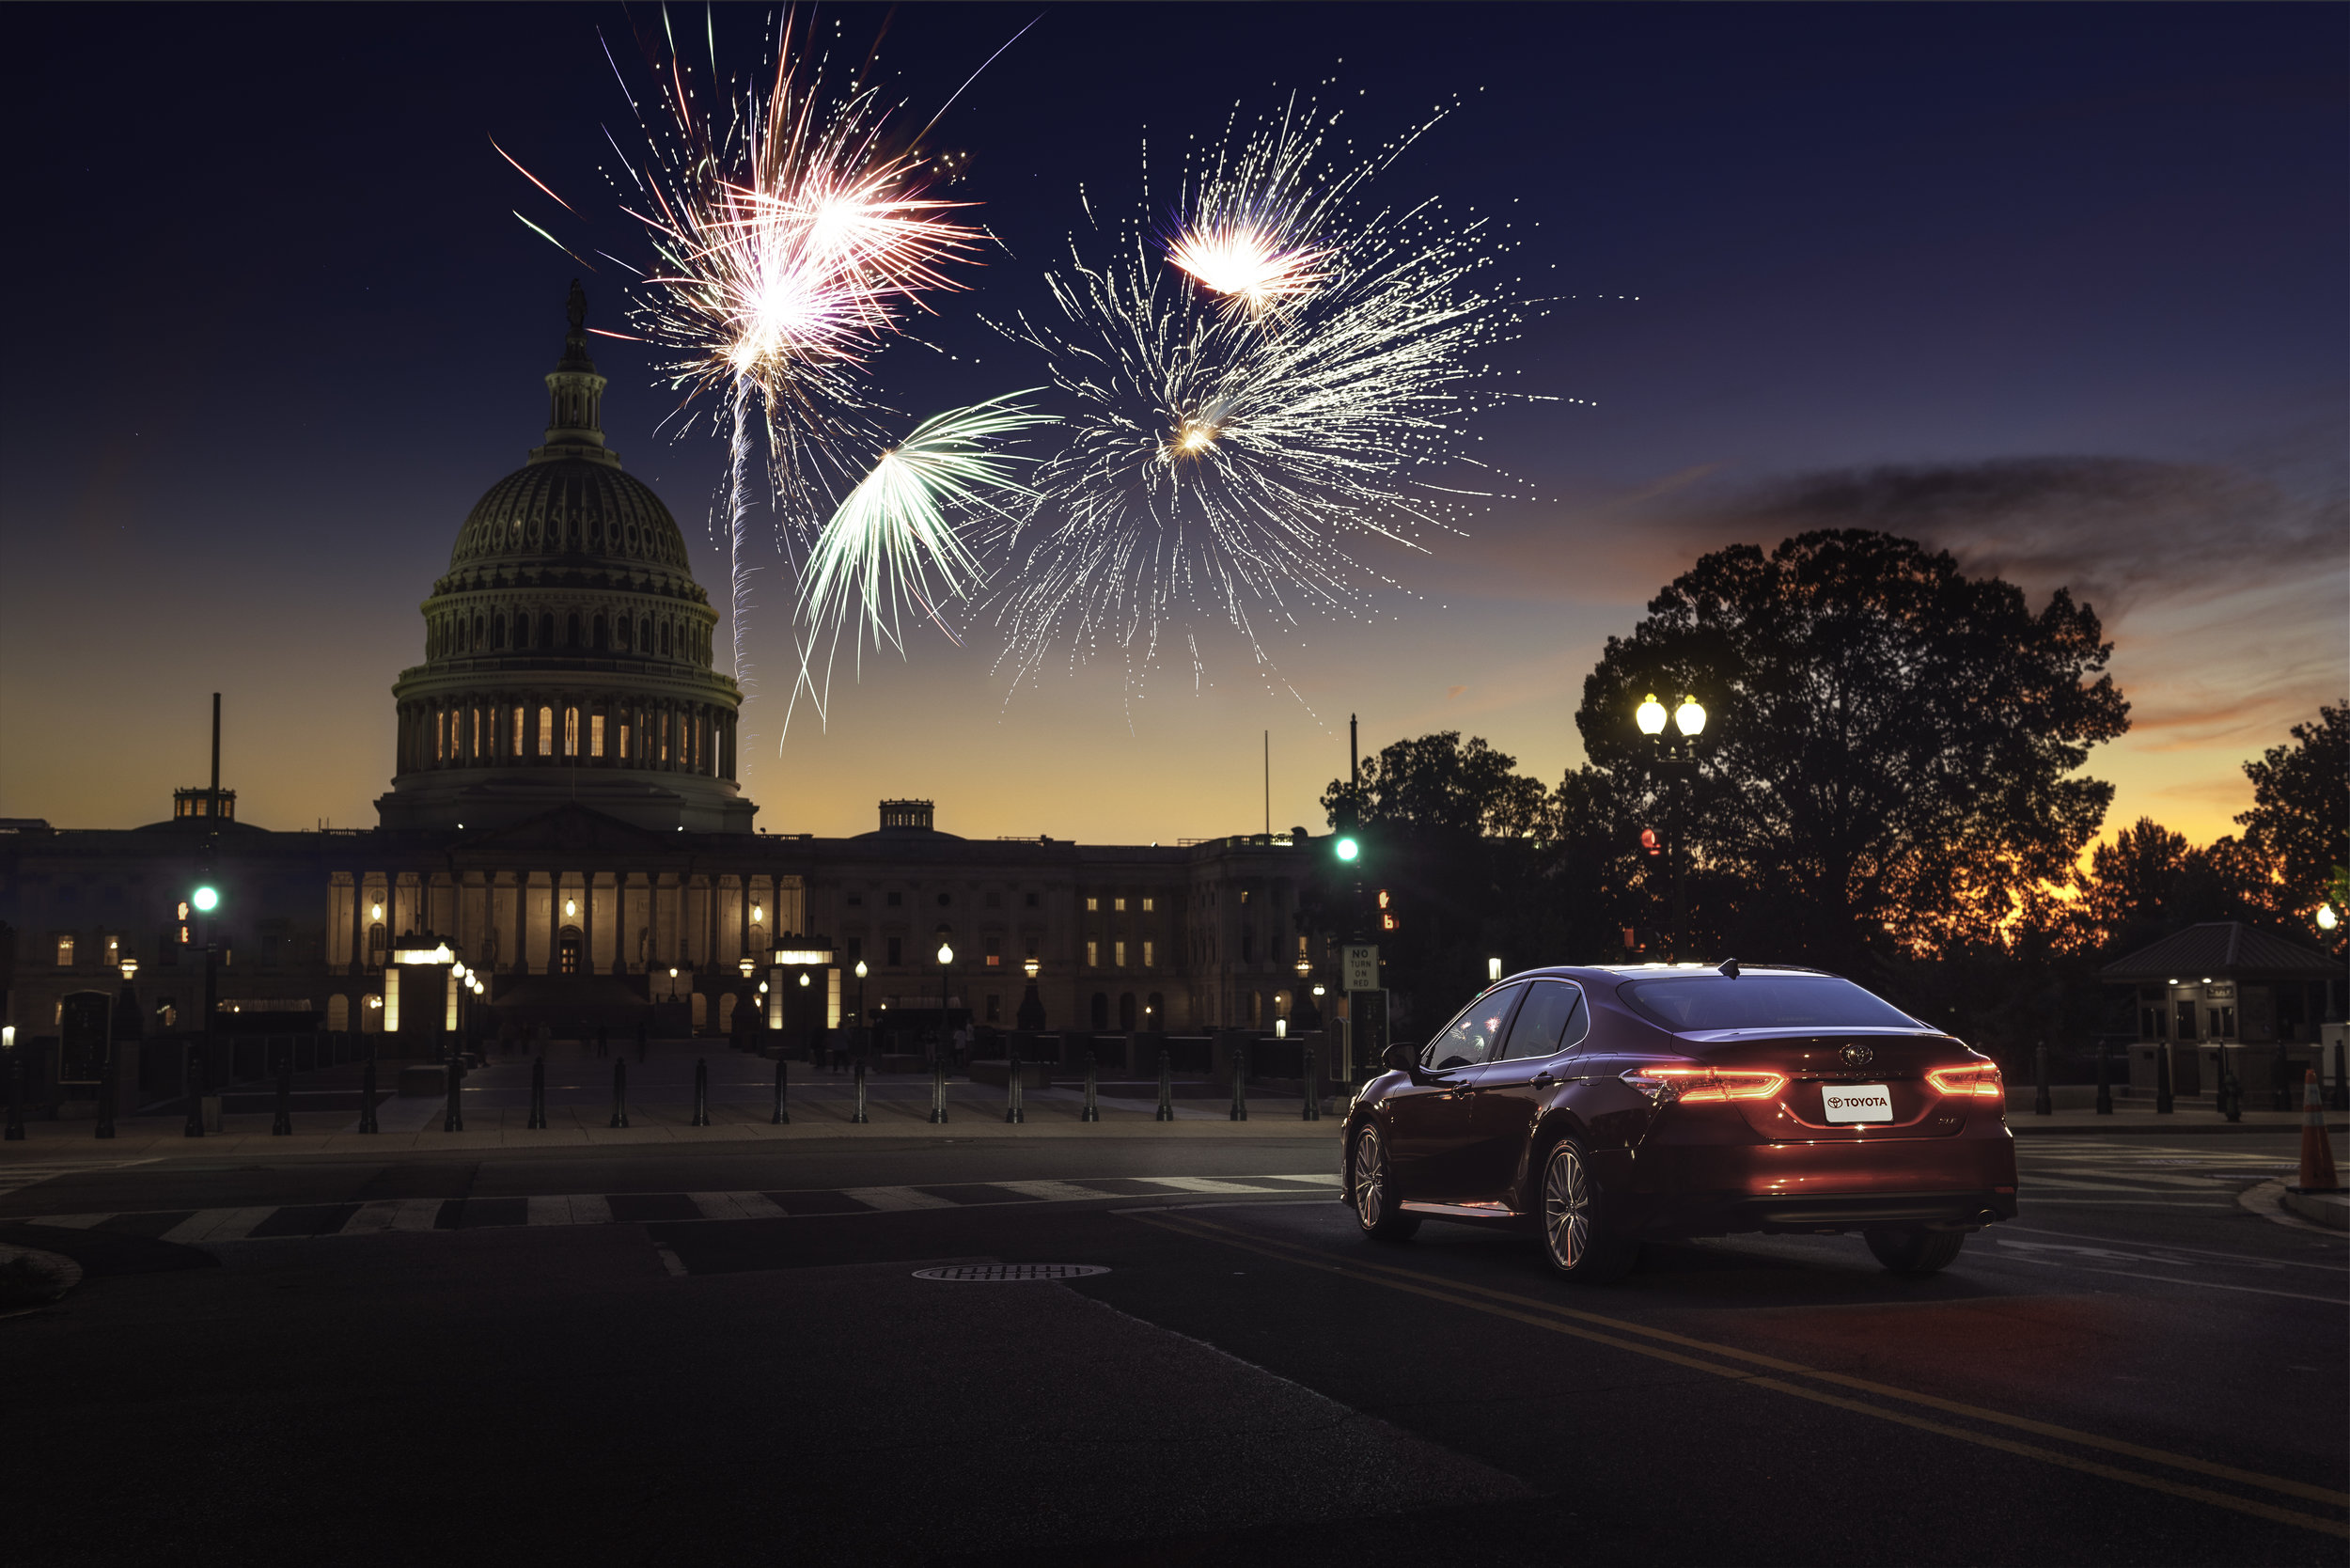 Camry Capitol Fireworks small file.jpg